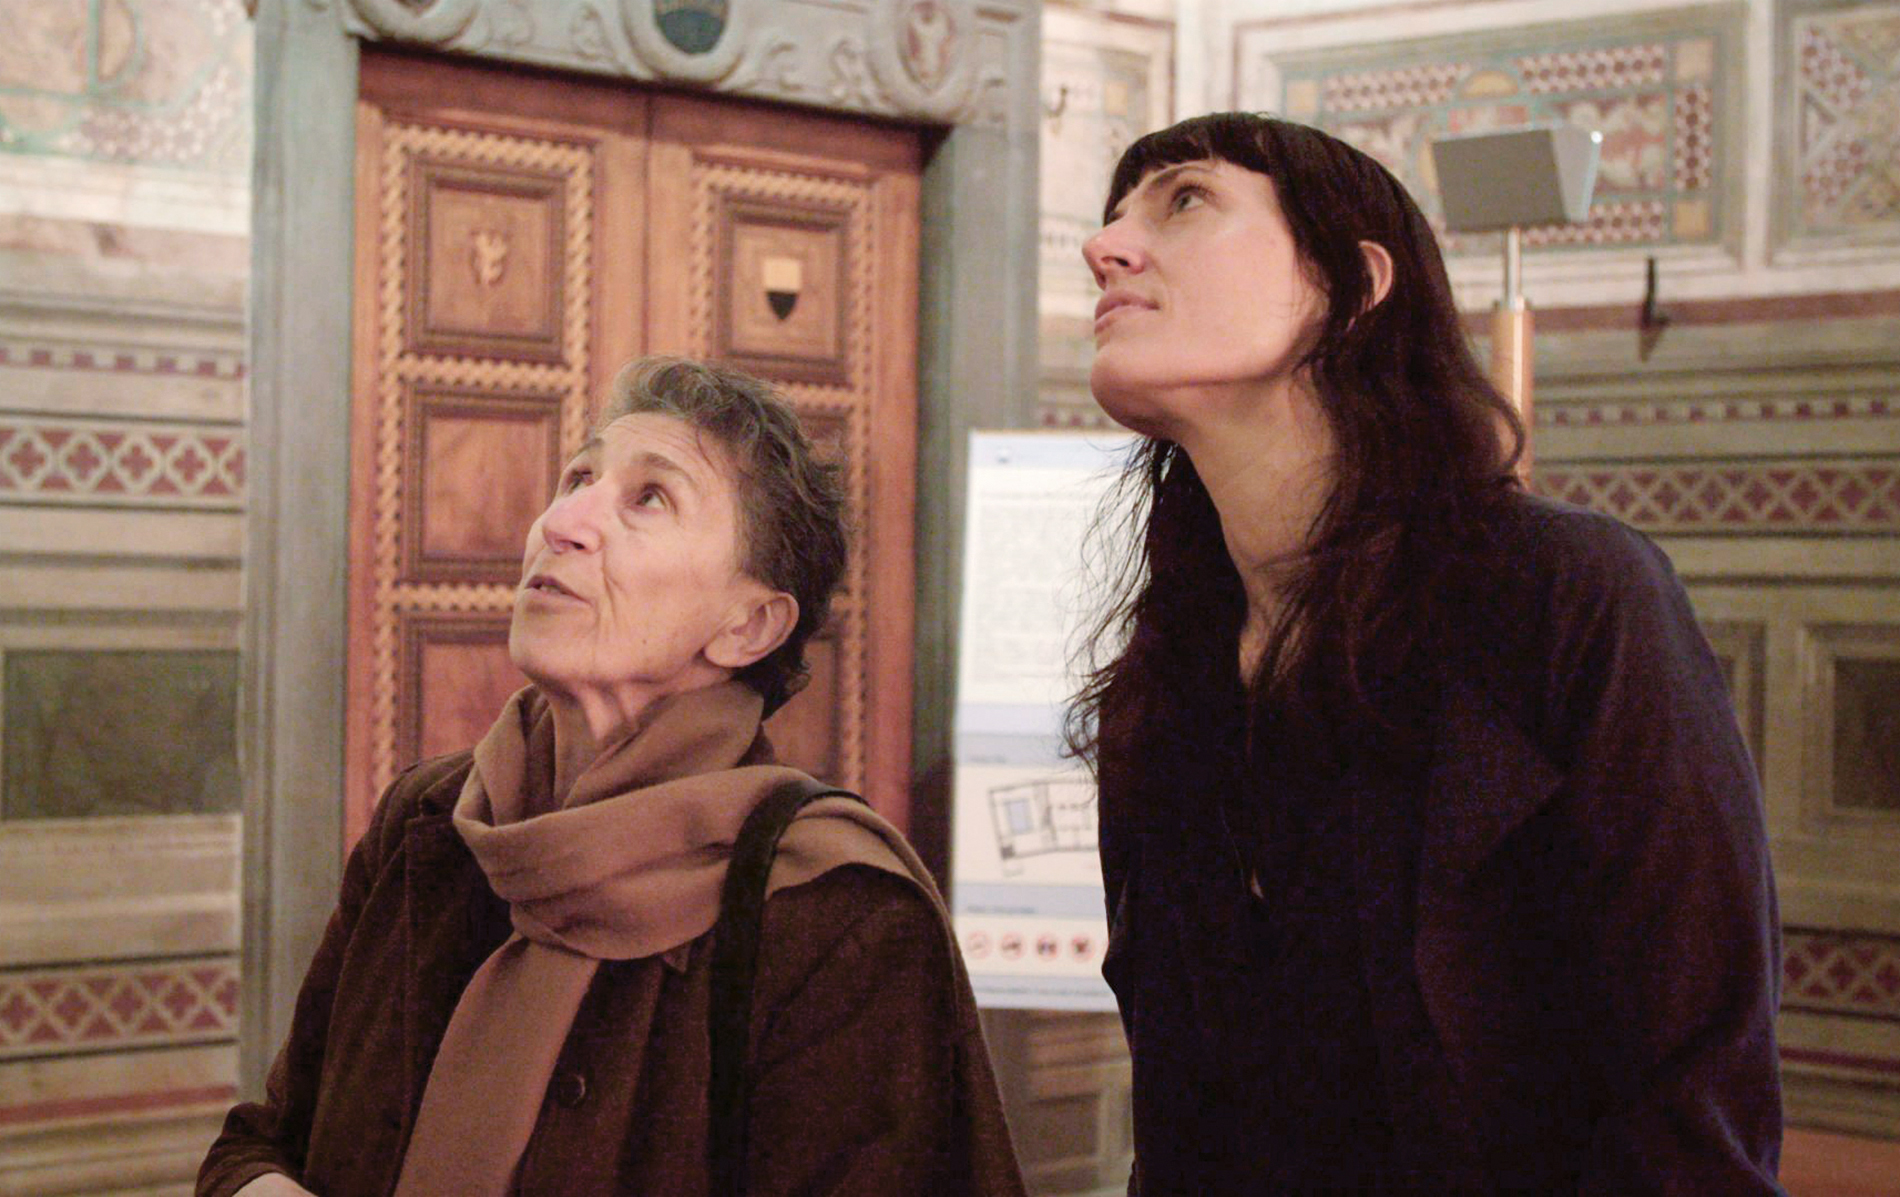 Photo of Silvia Federici and Astra Taylor